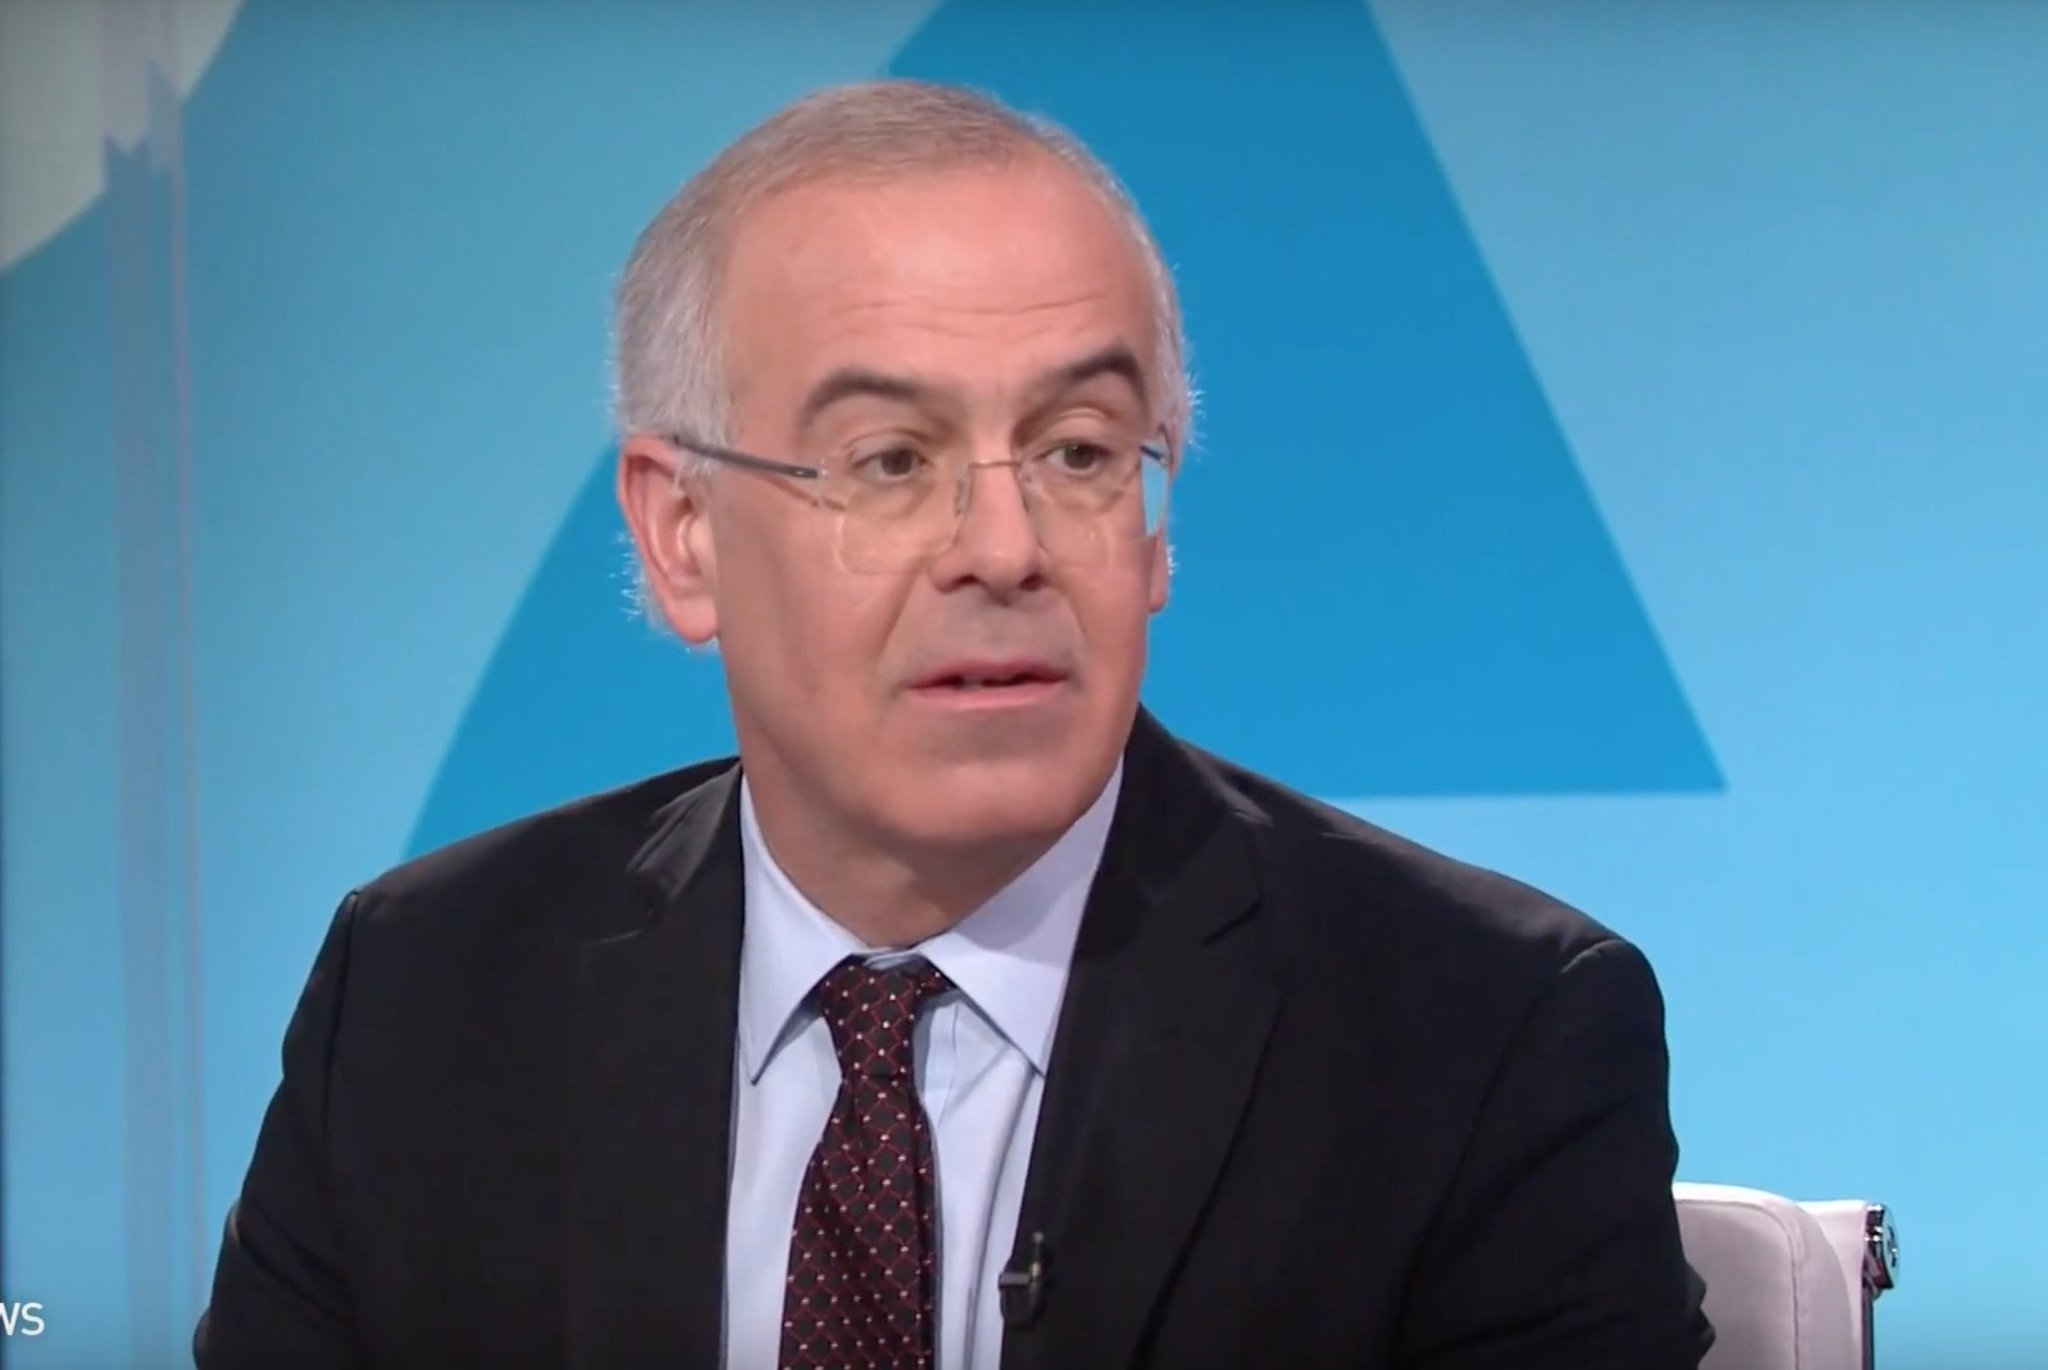 Twitter Blasts David Brooks For Suggesting The Left Should 'Show Respect To Gun Owners' https://t.co/FPngbSlaa9 https://t.co/PNIuri9hsi